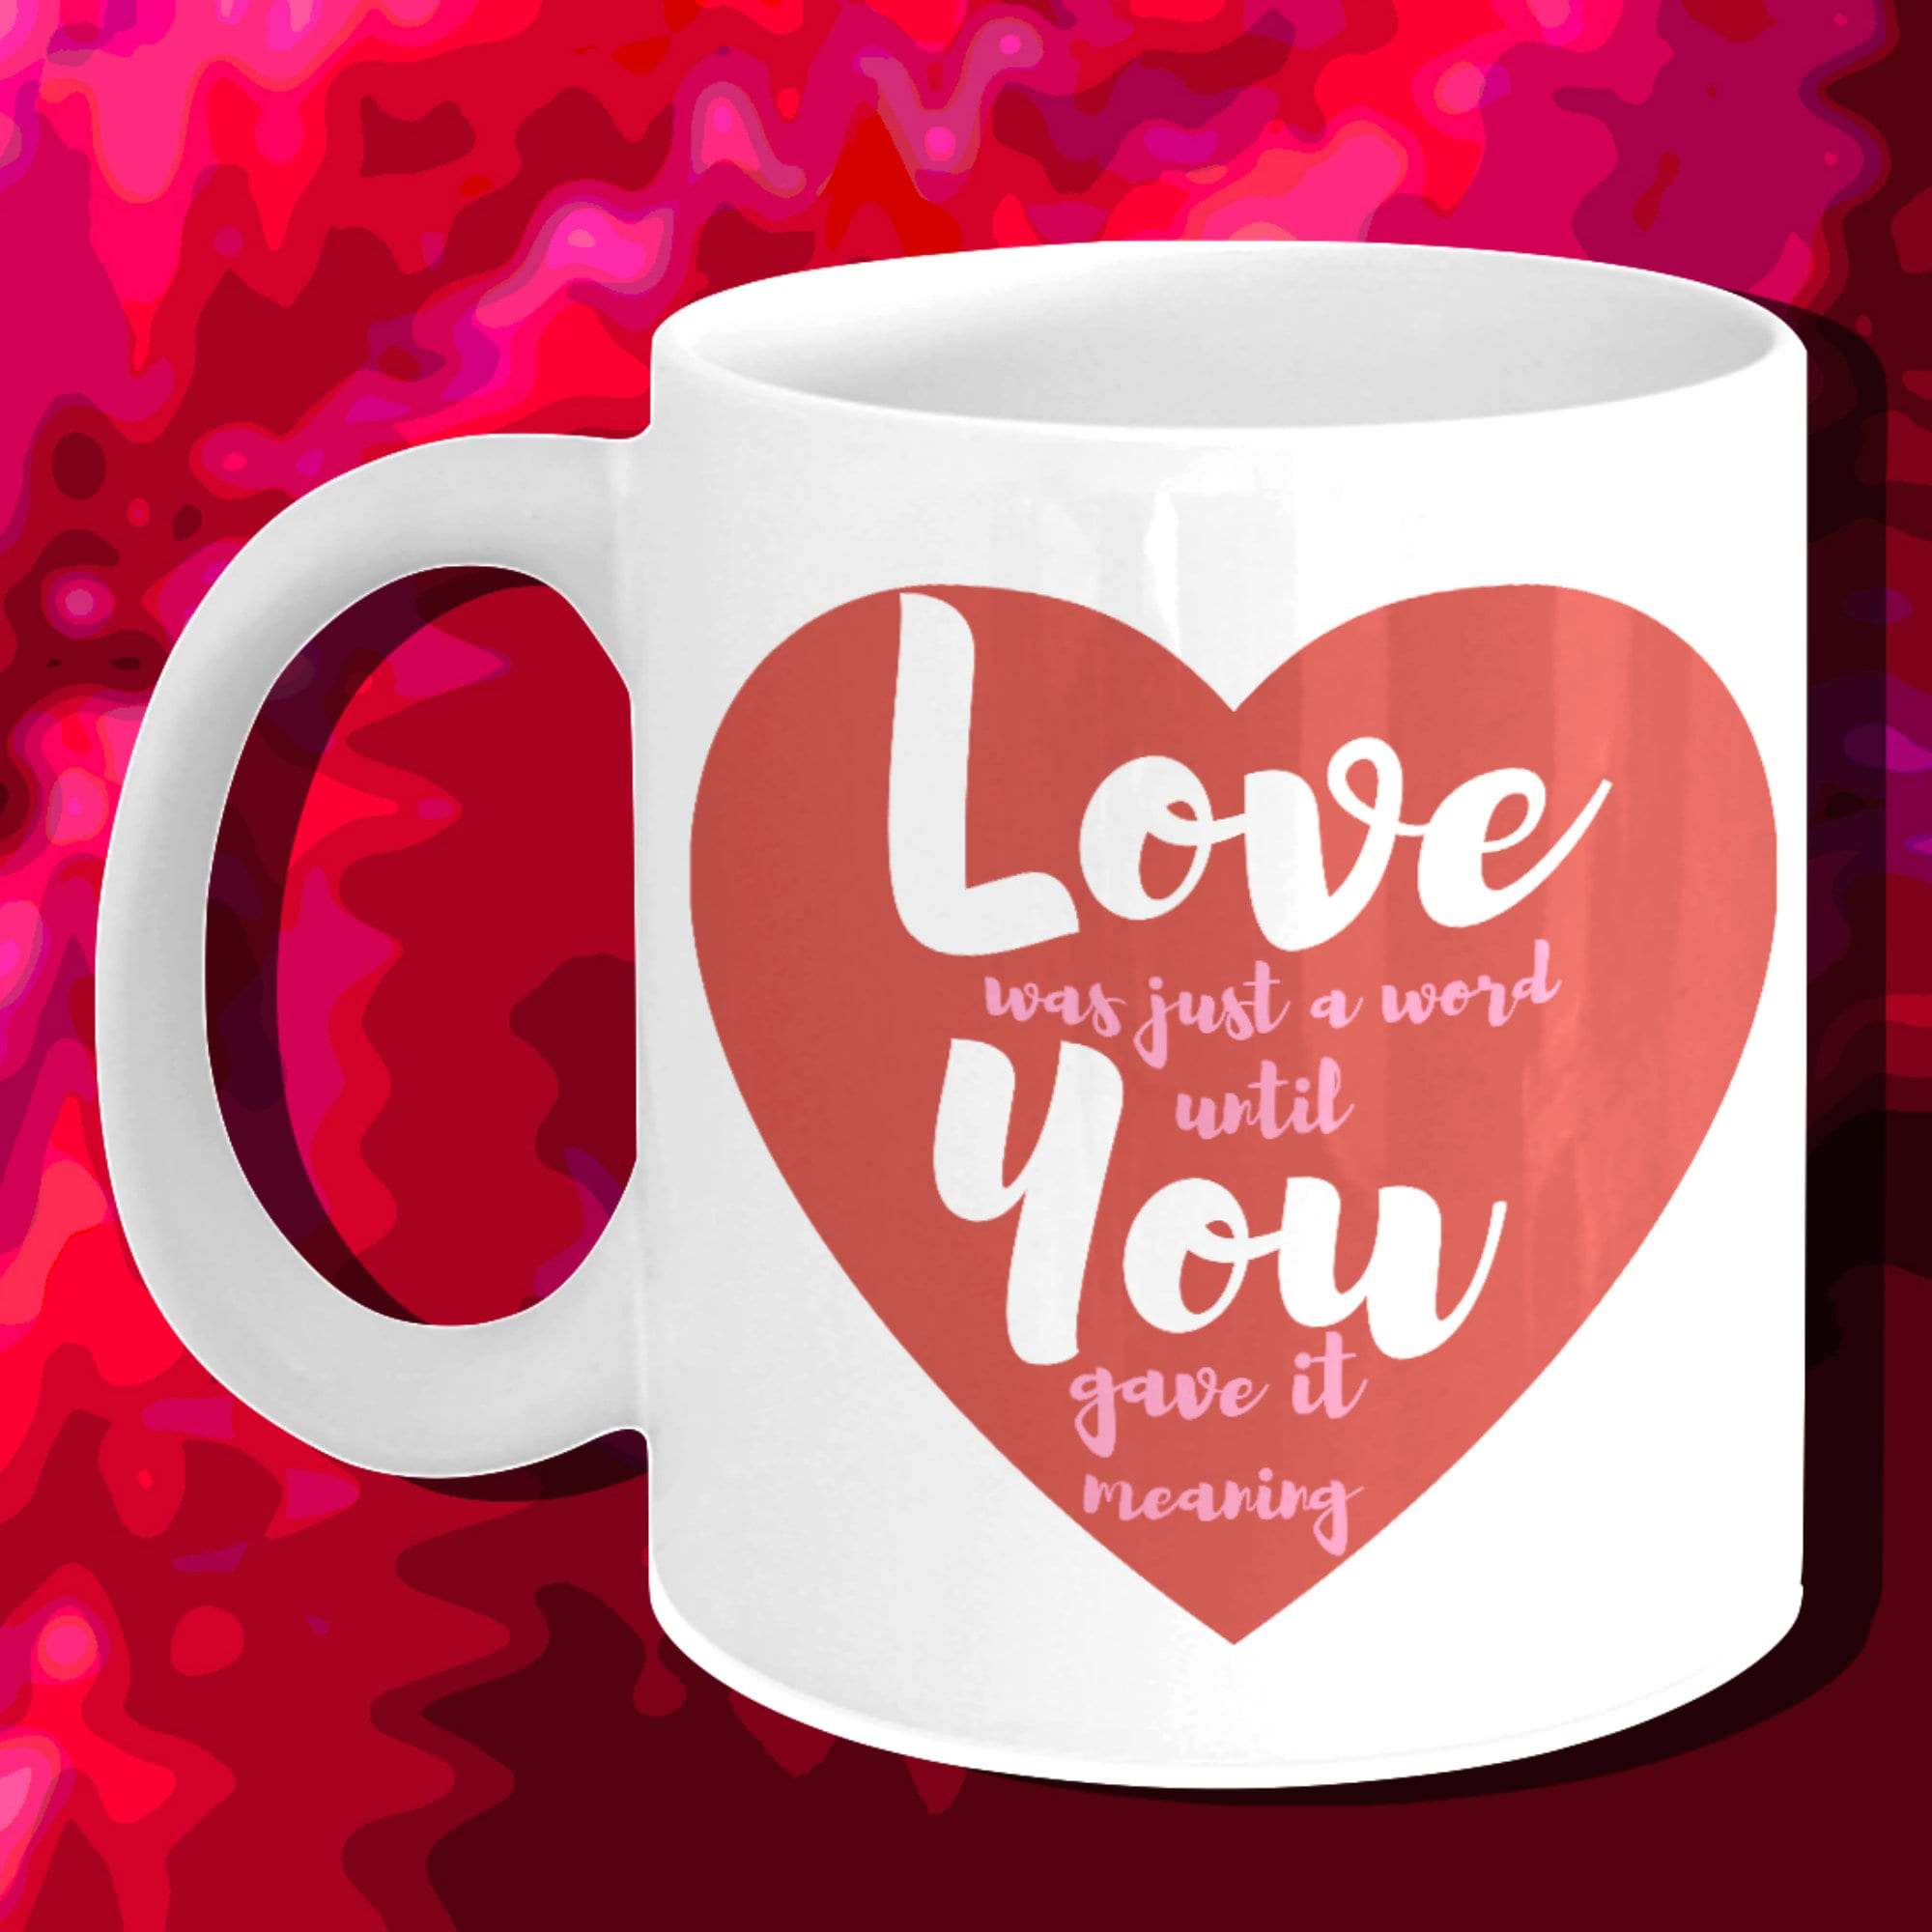 Love was just a word until you gave it meaning/ Love mug/ heart mug/ I love  you/ Quote mug/ Love quote mug/ True love/ Romantic gifts/